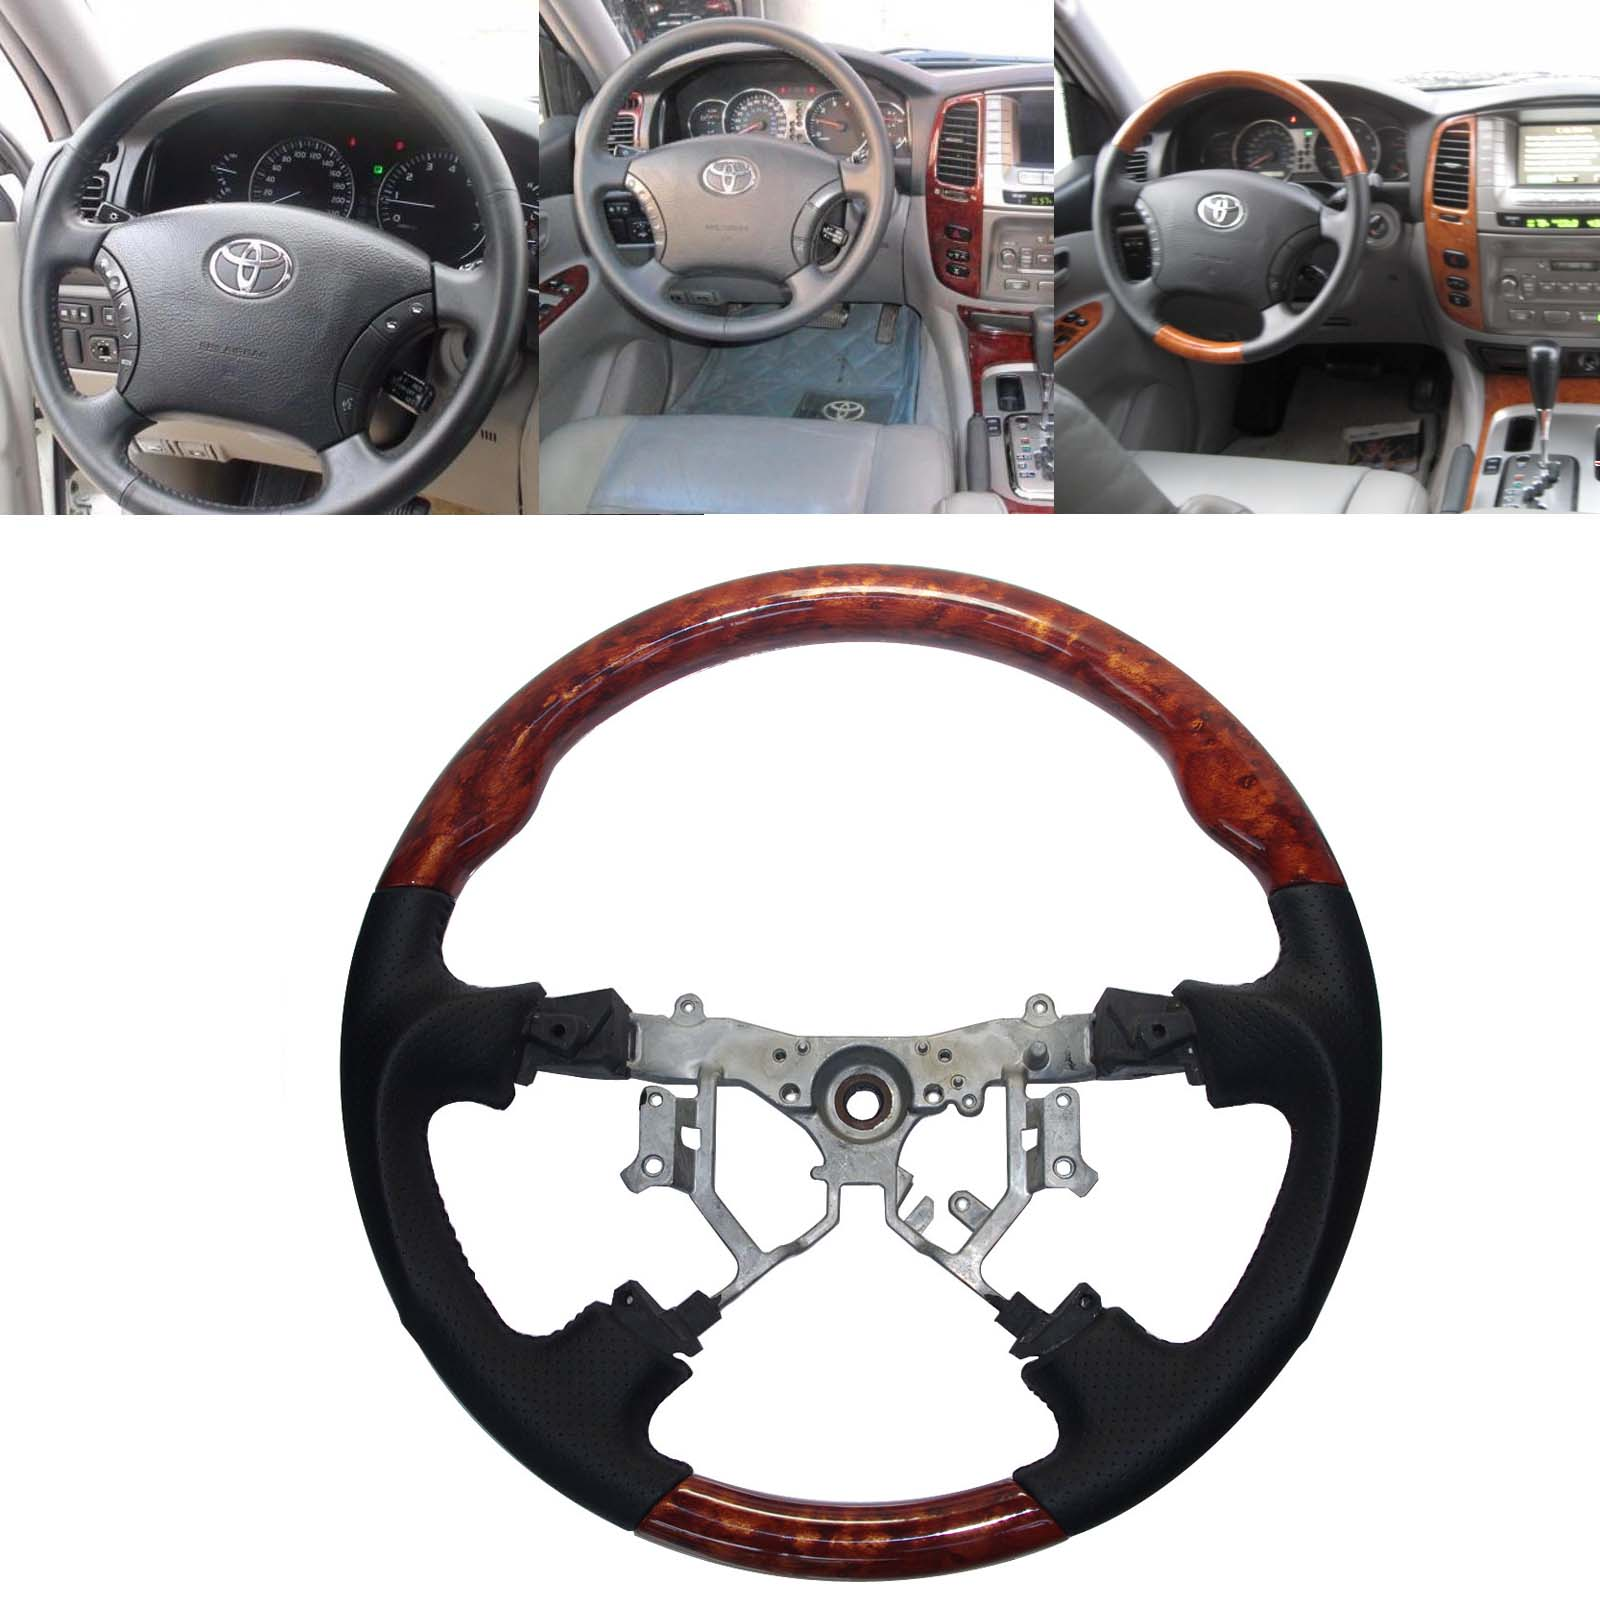 small resolution of black leather wood steering wheel for 2003 2009 toyota 4runner sequoia sienna tundra camry previa tacoma hiace estima hilux